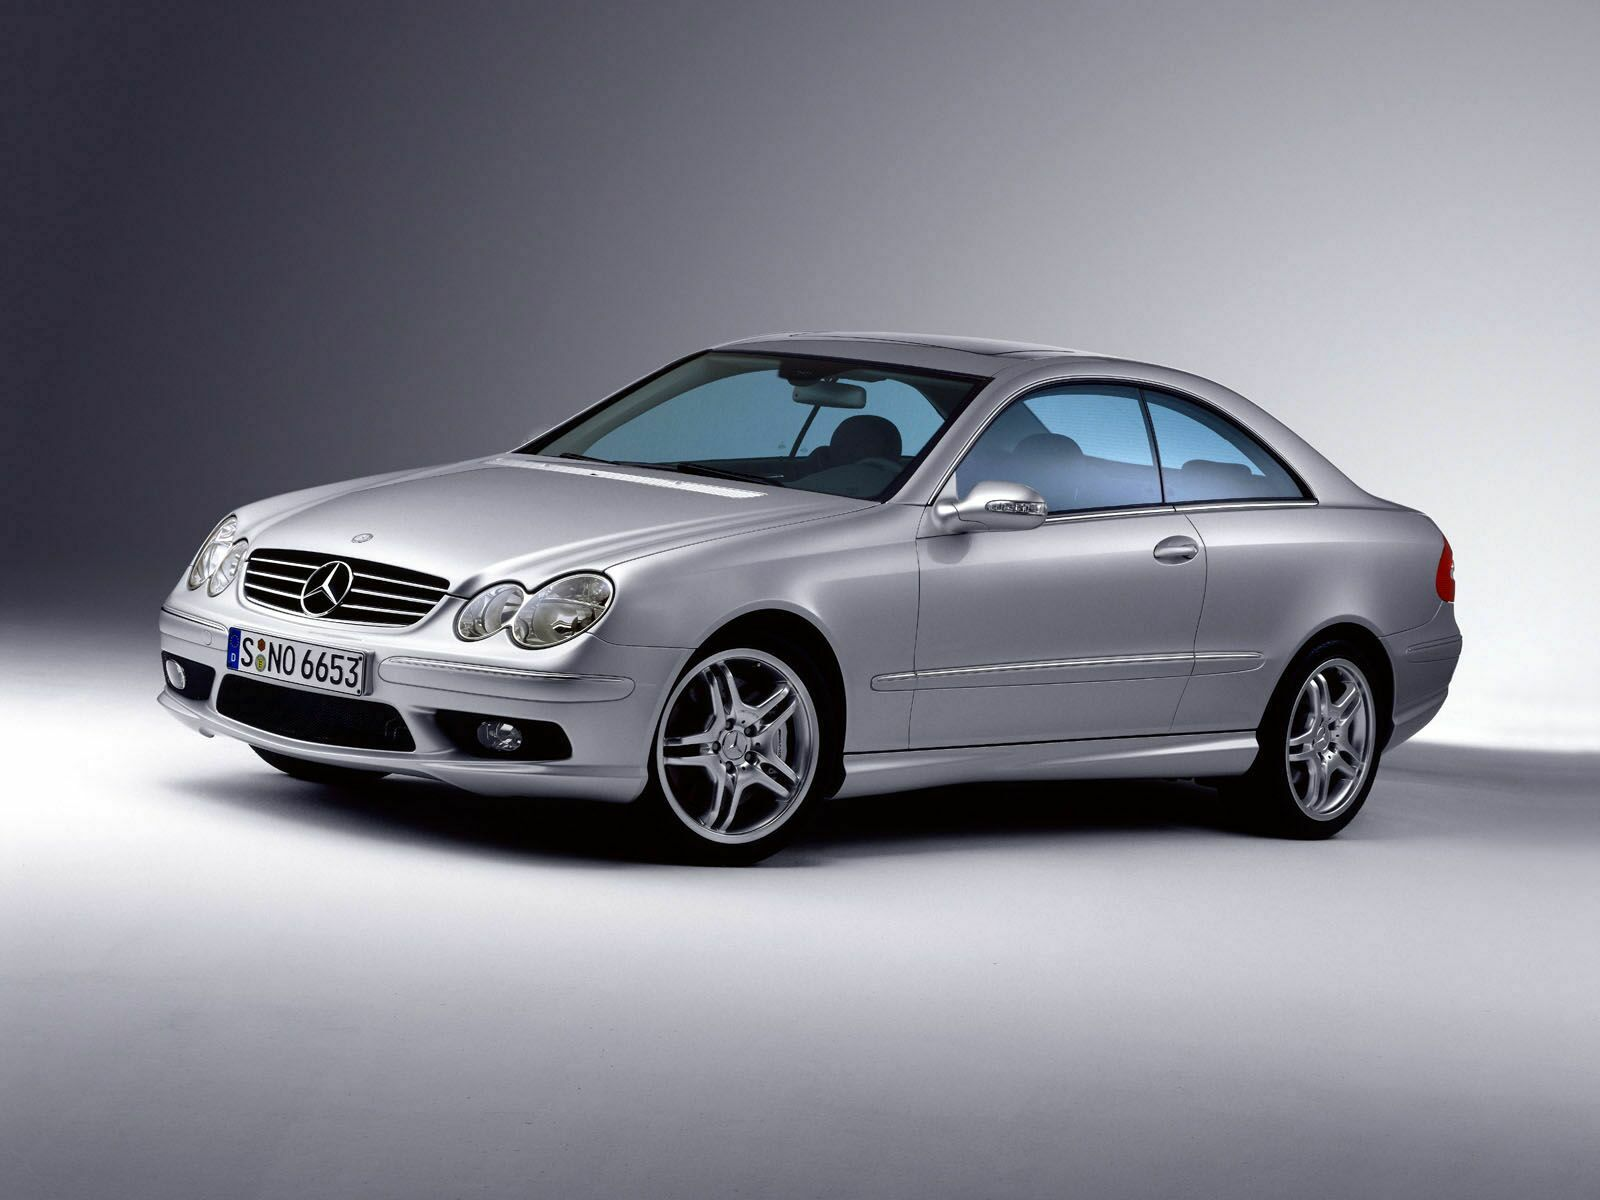 mercedes benz clk class w209 photos photogallery with 9. Black Bedroom Furniture Sets. Home Design Ideas